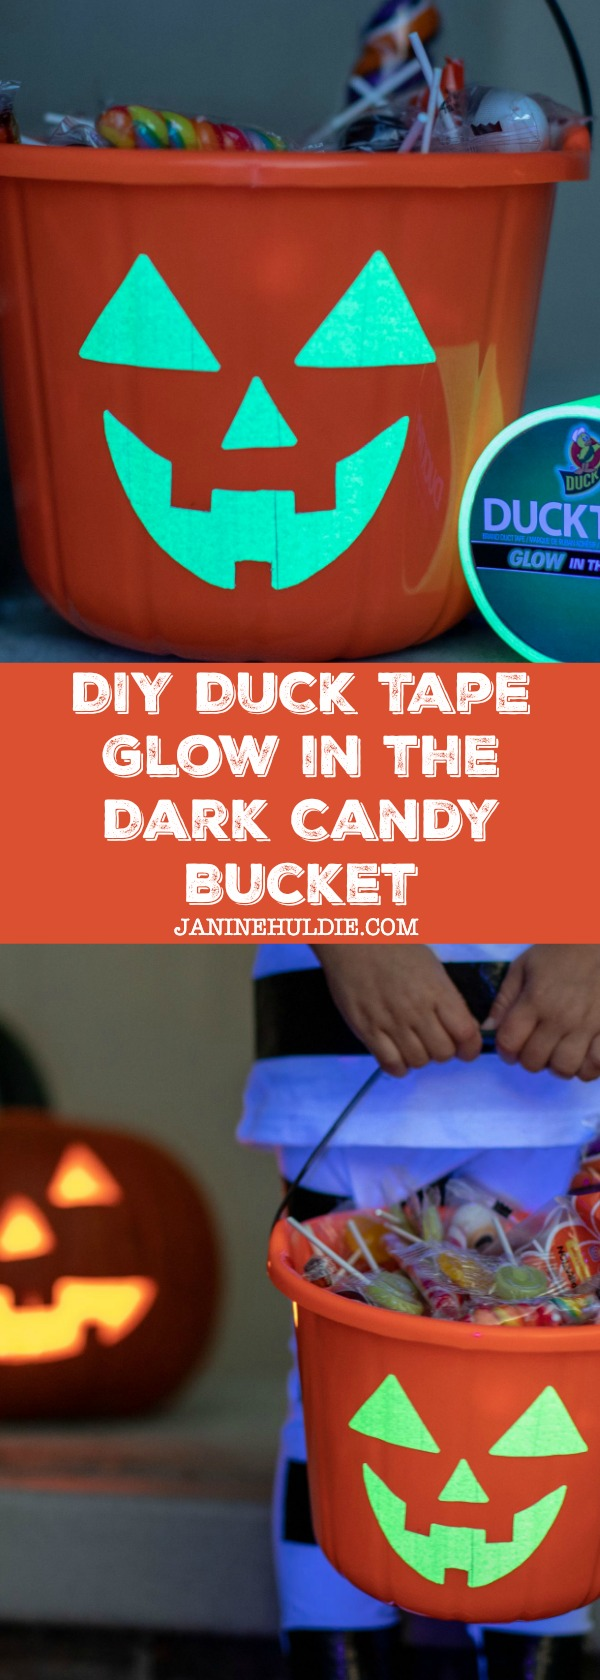 DIY Duck Tape Glow in the Dark Candy Bucket